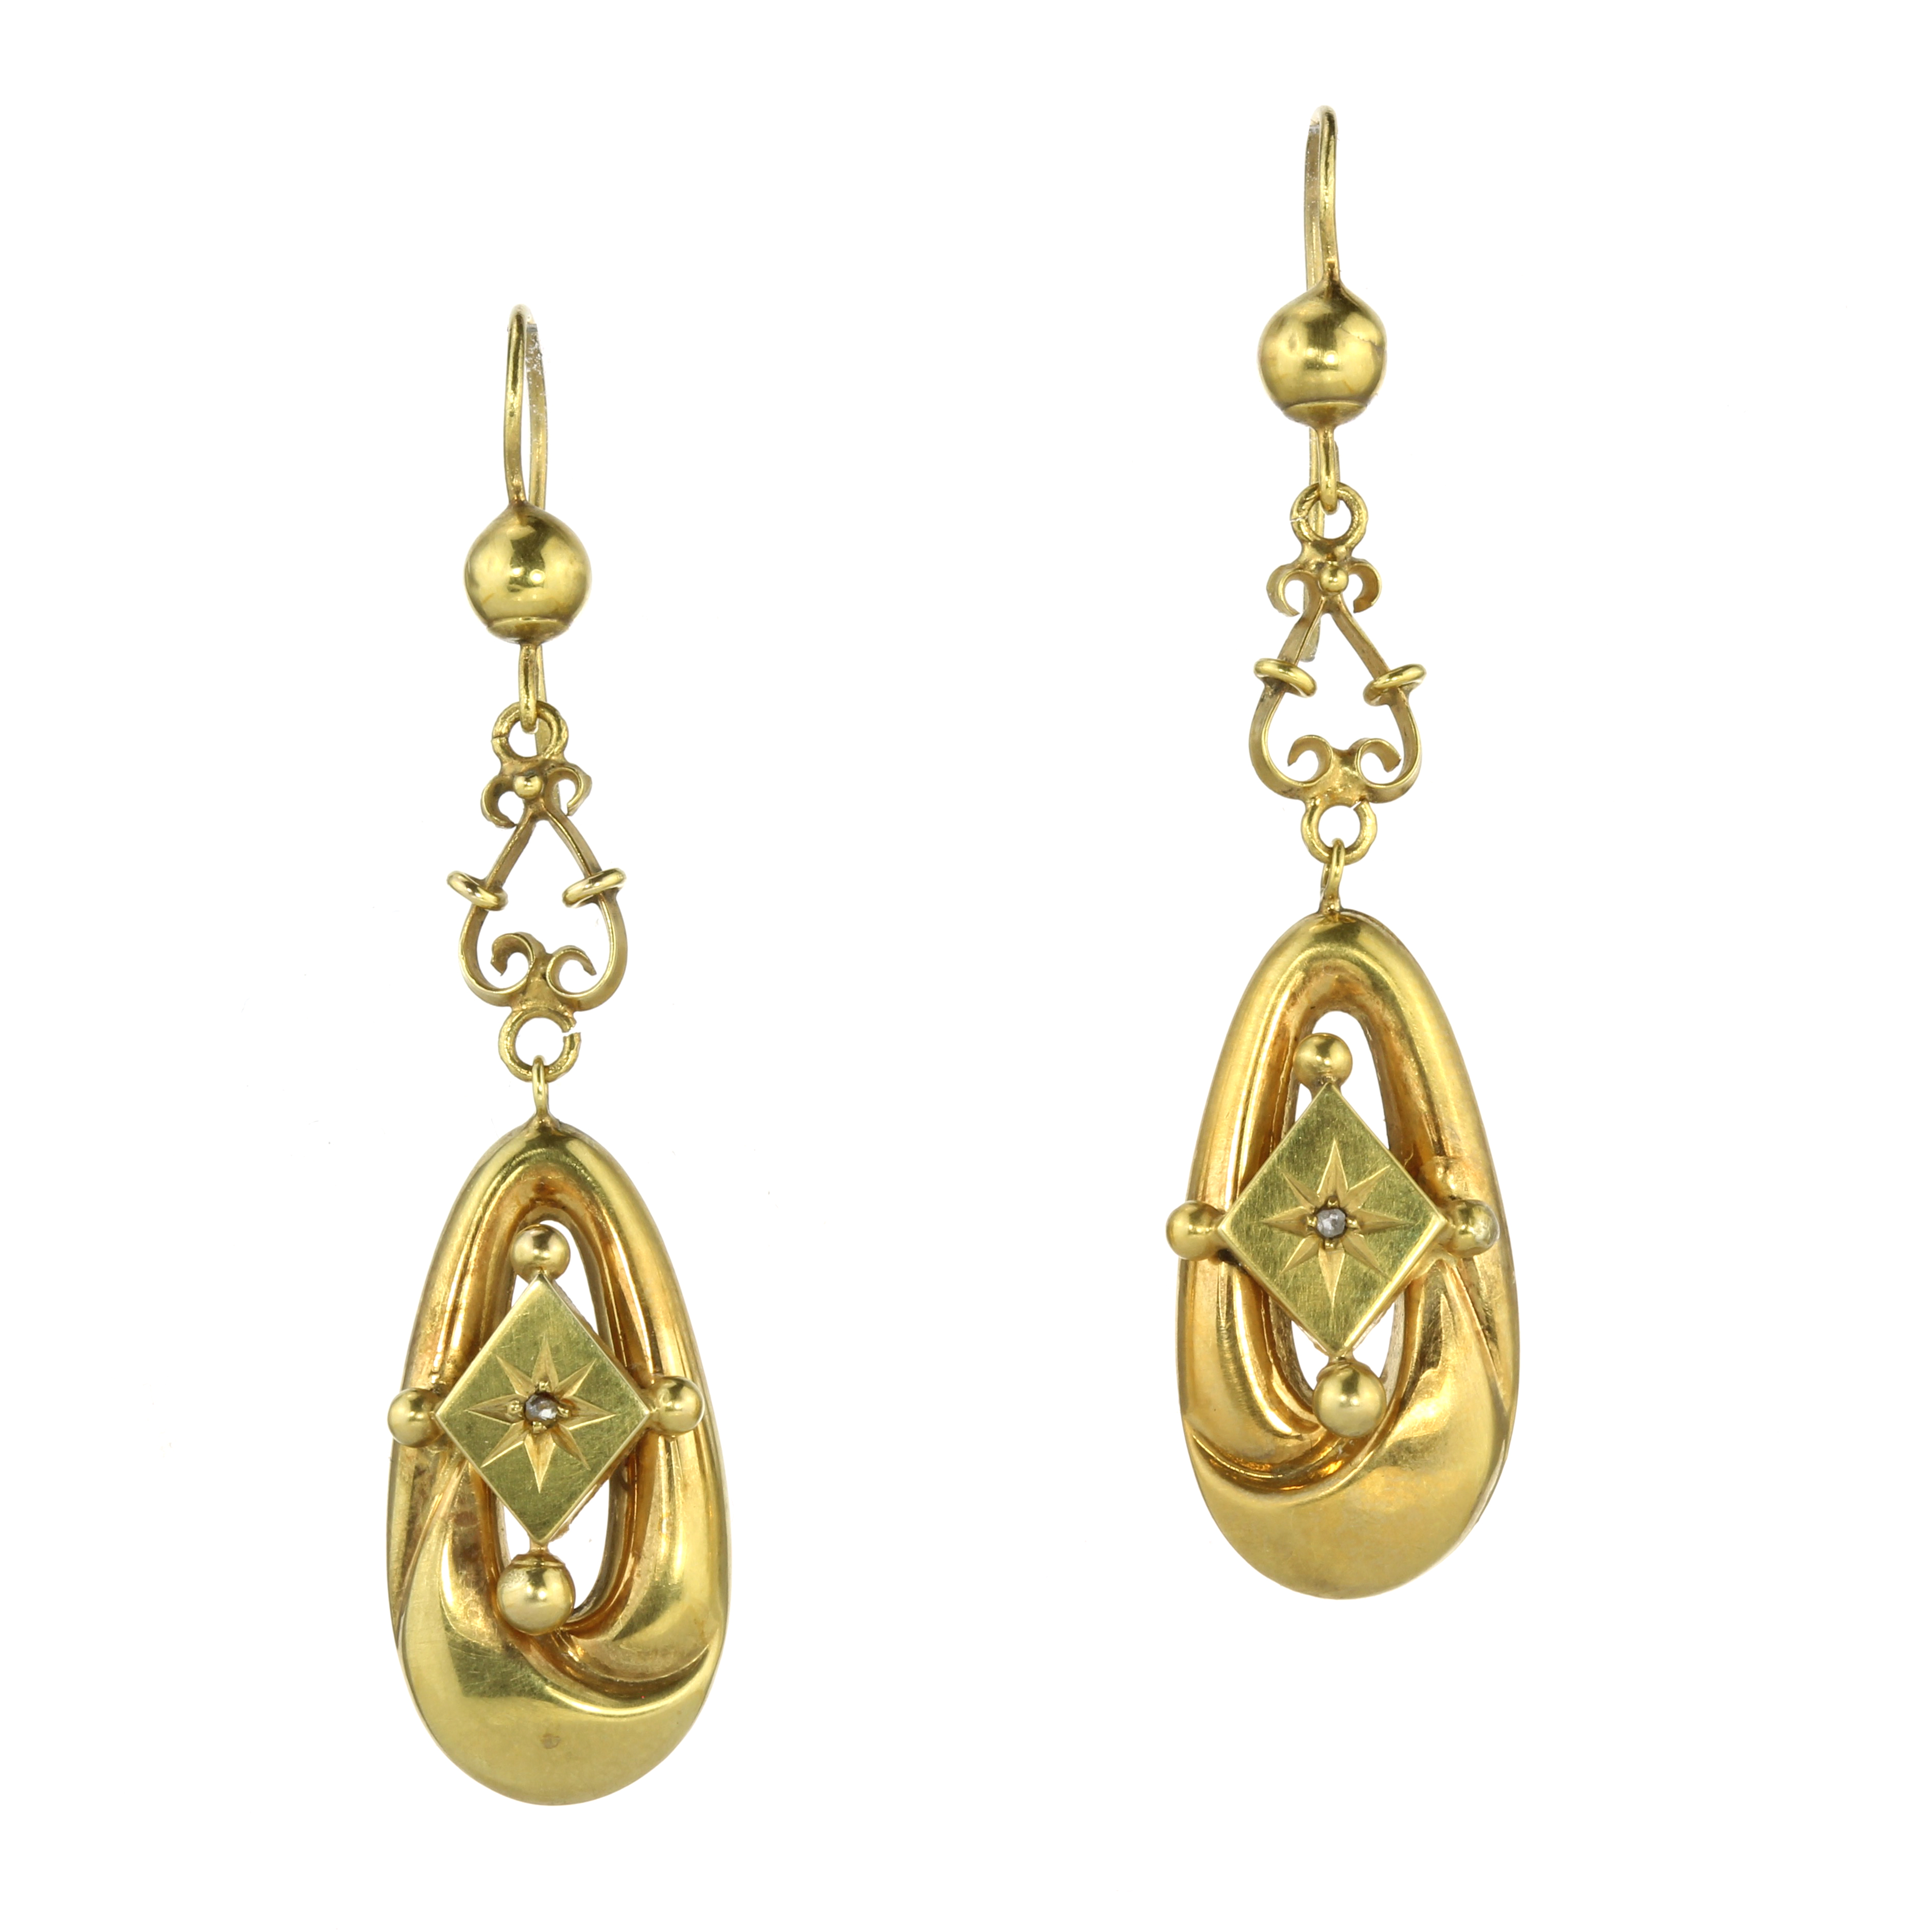 A PAIR OF ANTIQUE DIAMOND DROP EARRINGS in high carat yellow gold, each set with a rose cut